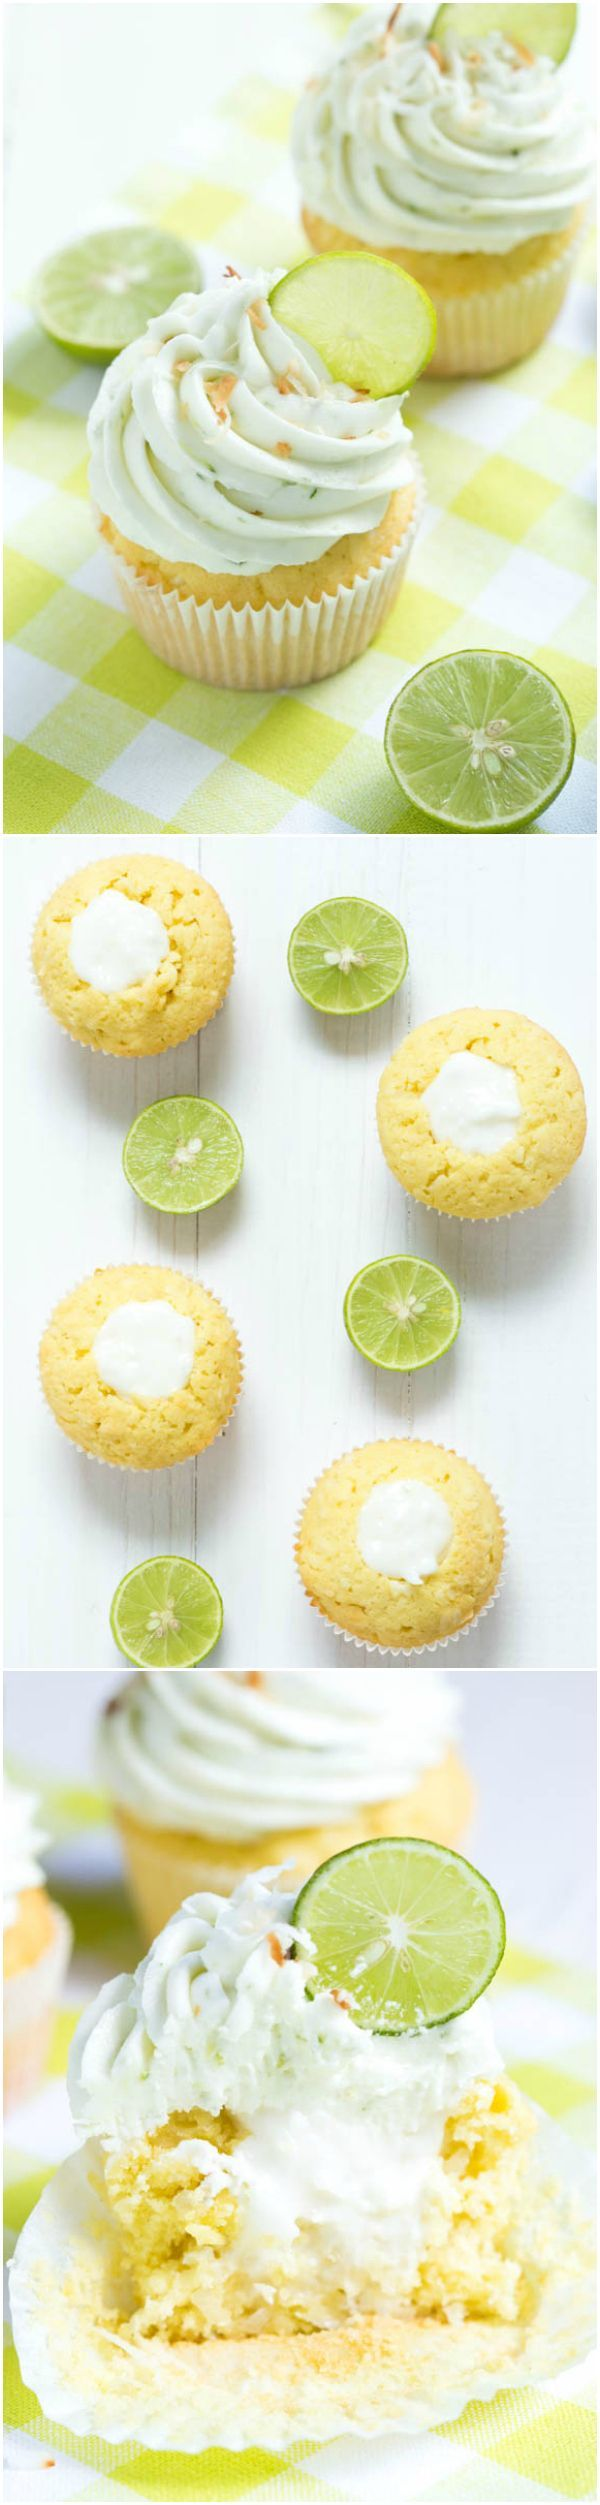 Coconut Cupcakes with Key Lime Buttercream Frosting - coconut cake is filled with coconut filling and topped with fresh key lime buttercream!